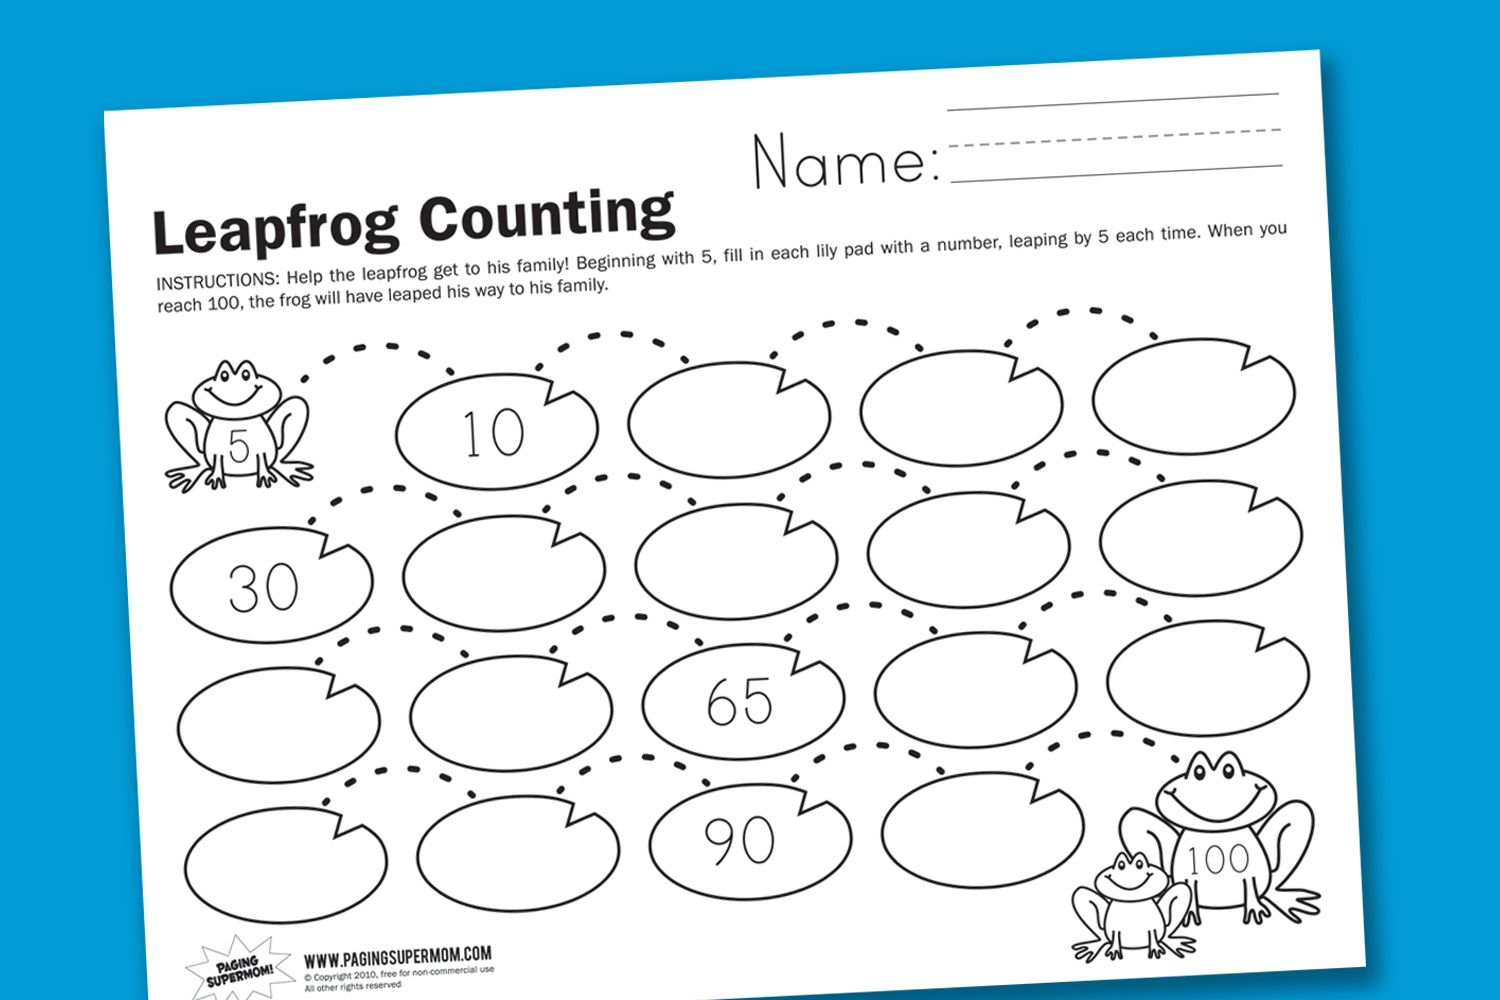 Leapfrog Counting   Kids math worksheets [ 1000 x 1500 Pixel ]